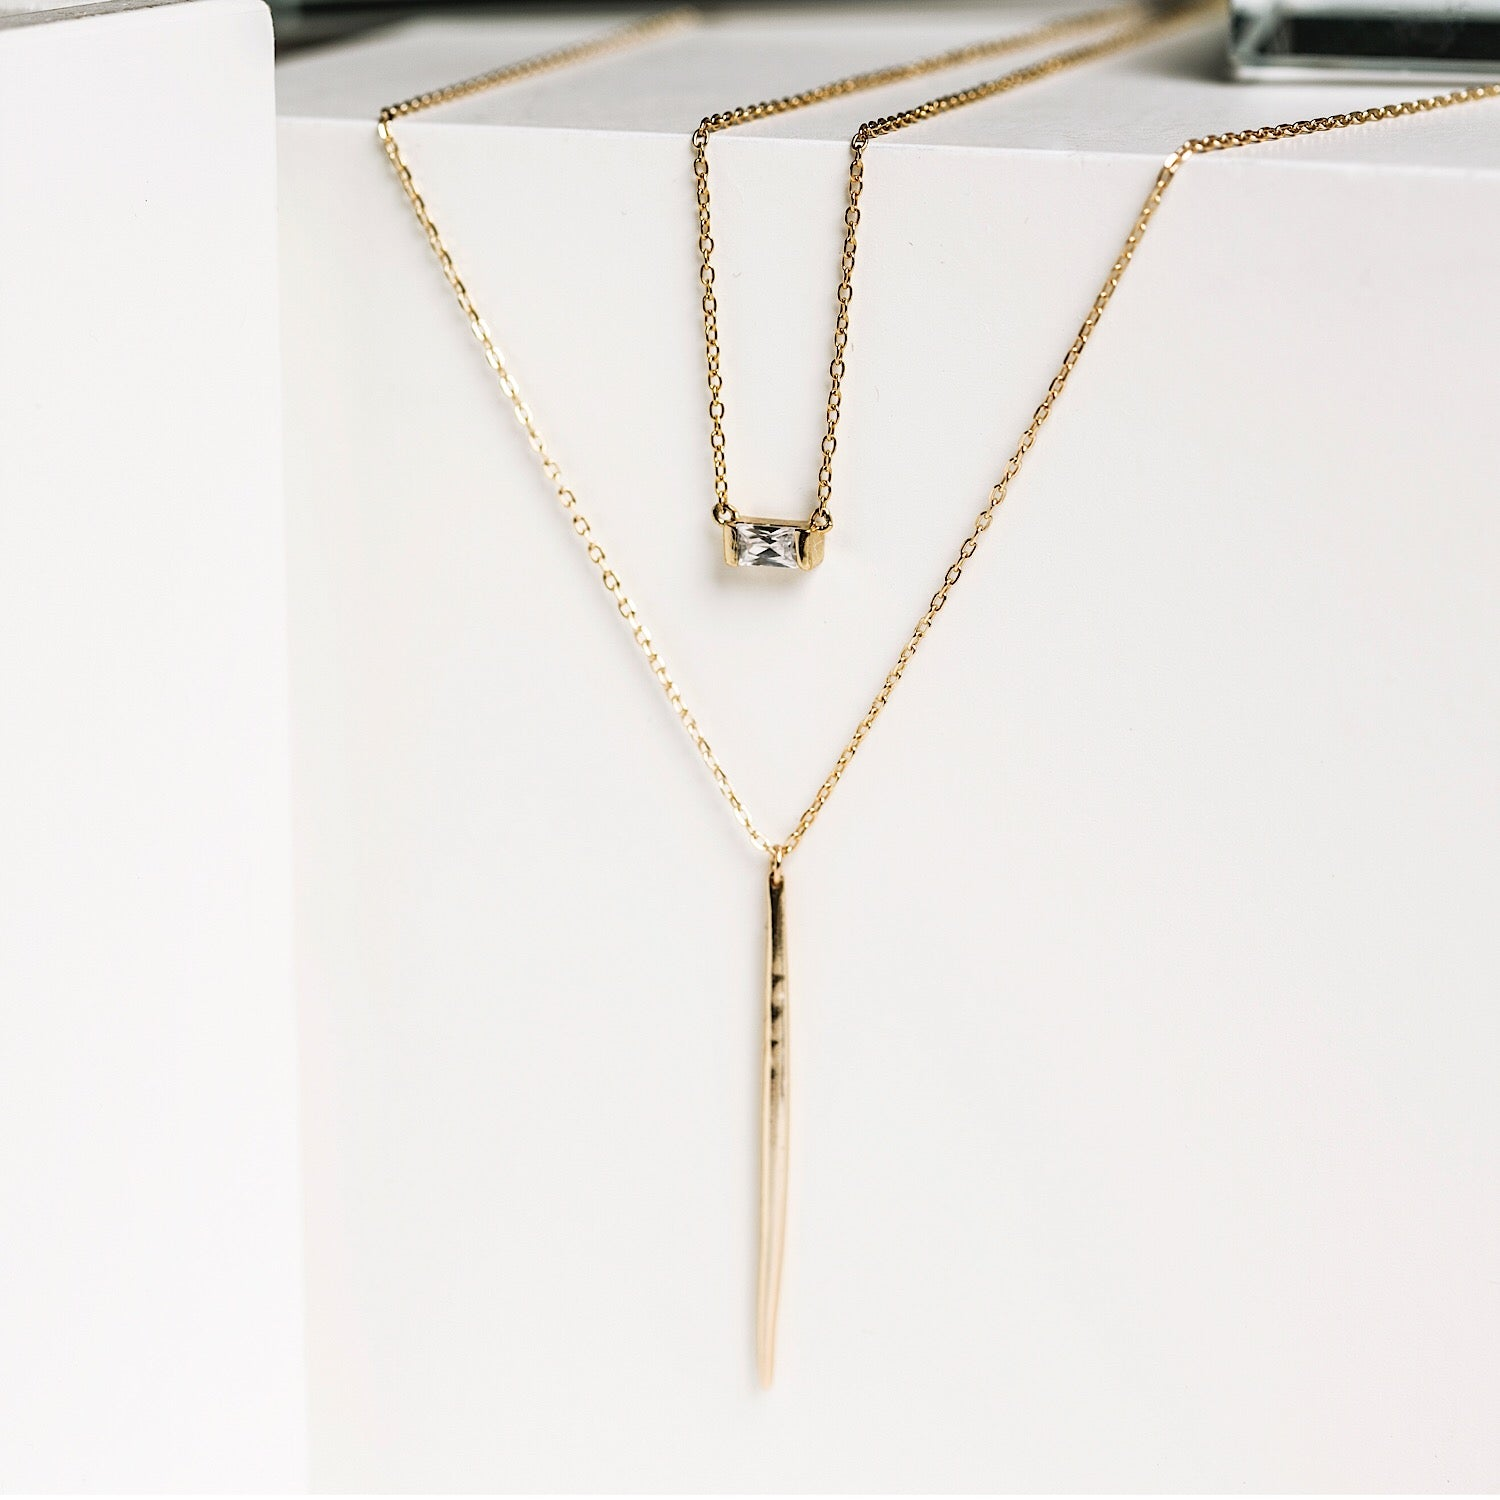 Sofia Baguette Necklace, Necklaces - AMY O. Jewelry